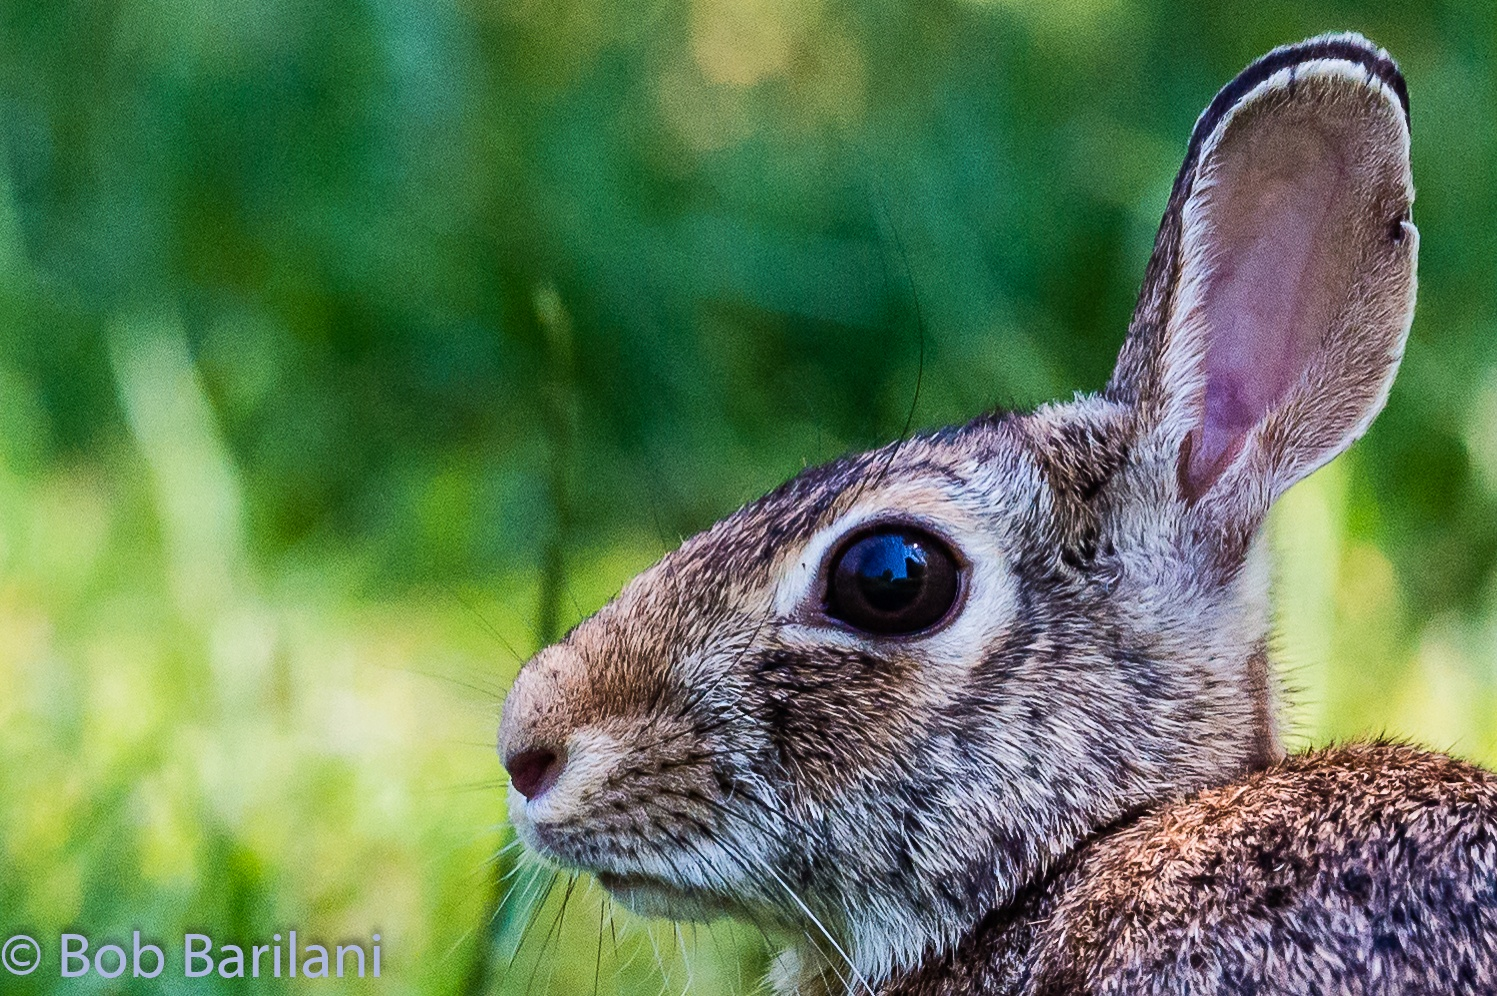 Eastern Cottontail Portrait - Full screen recommended by Roberto Barilani